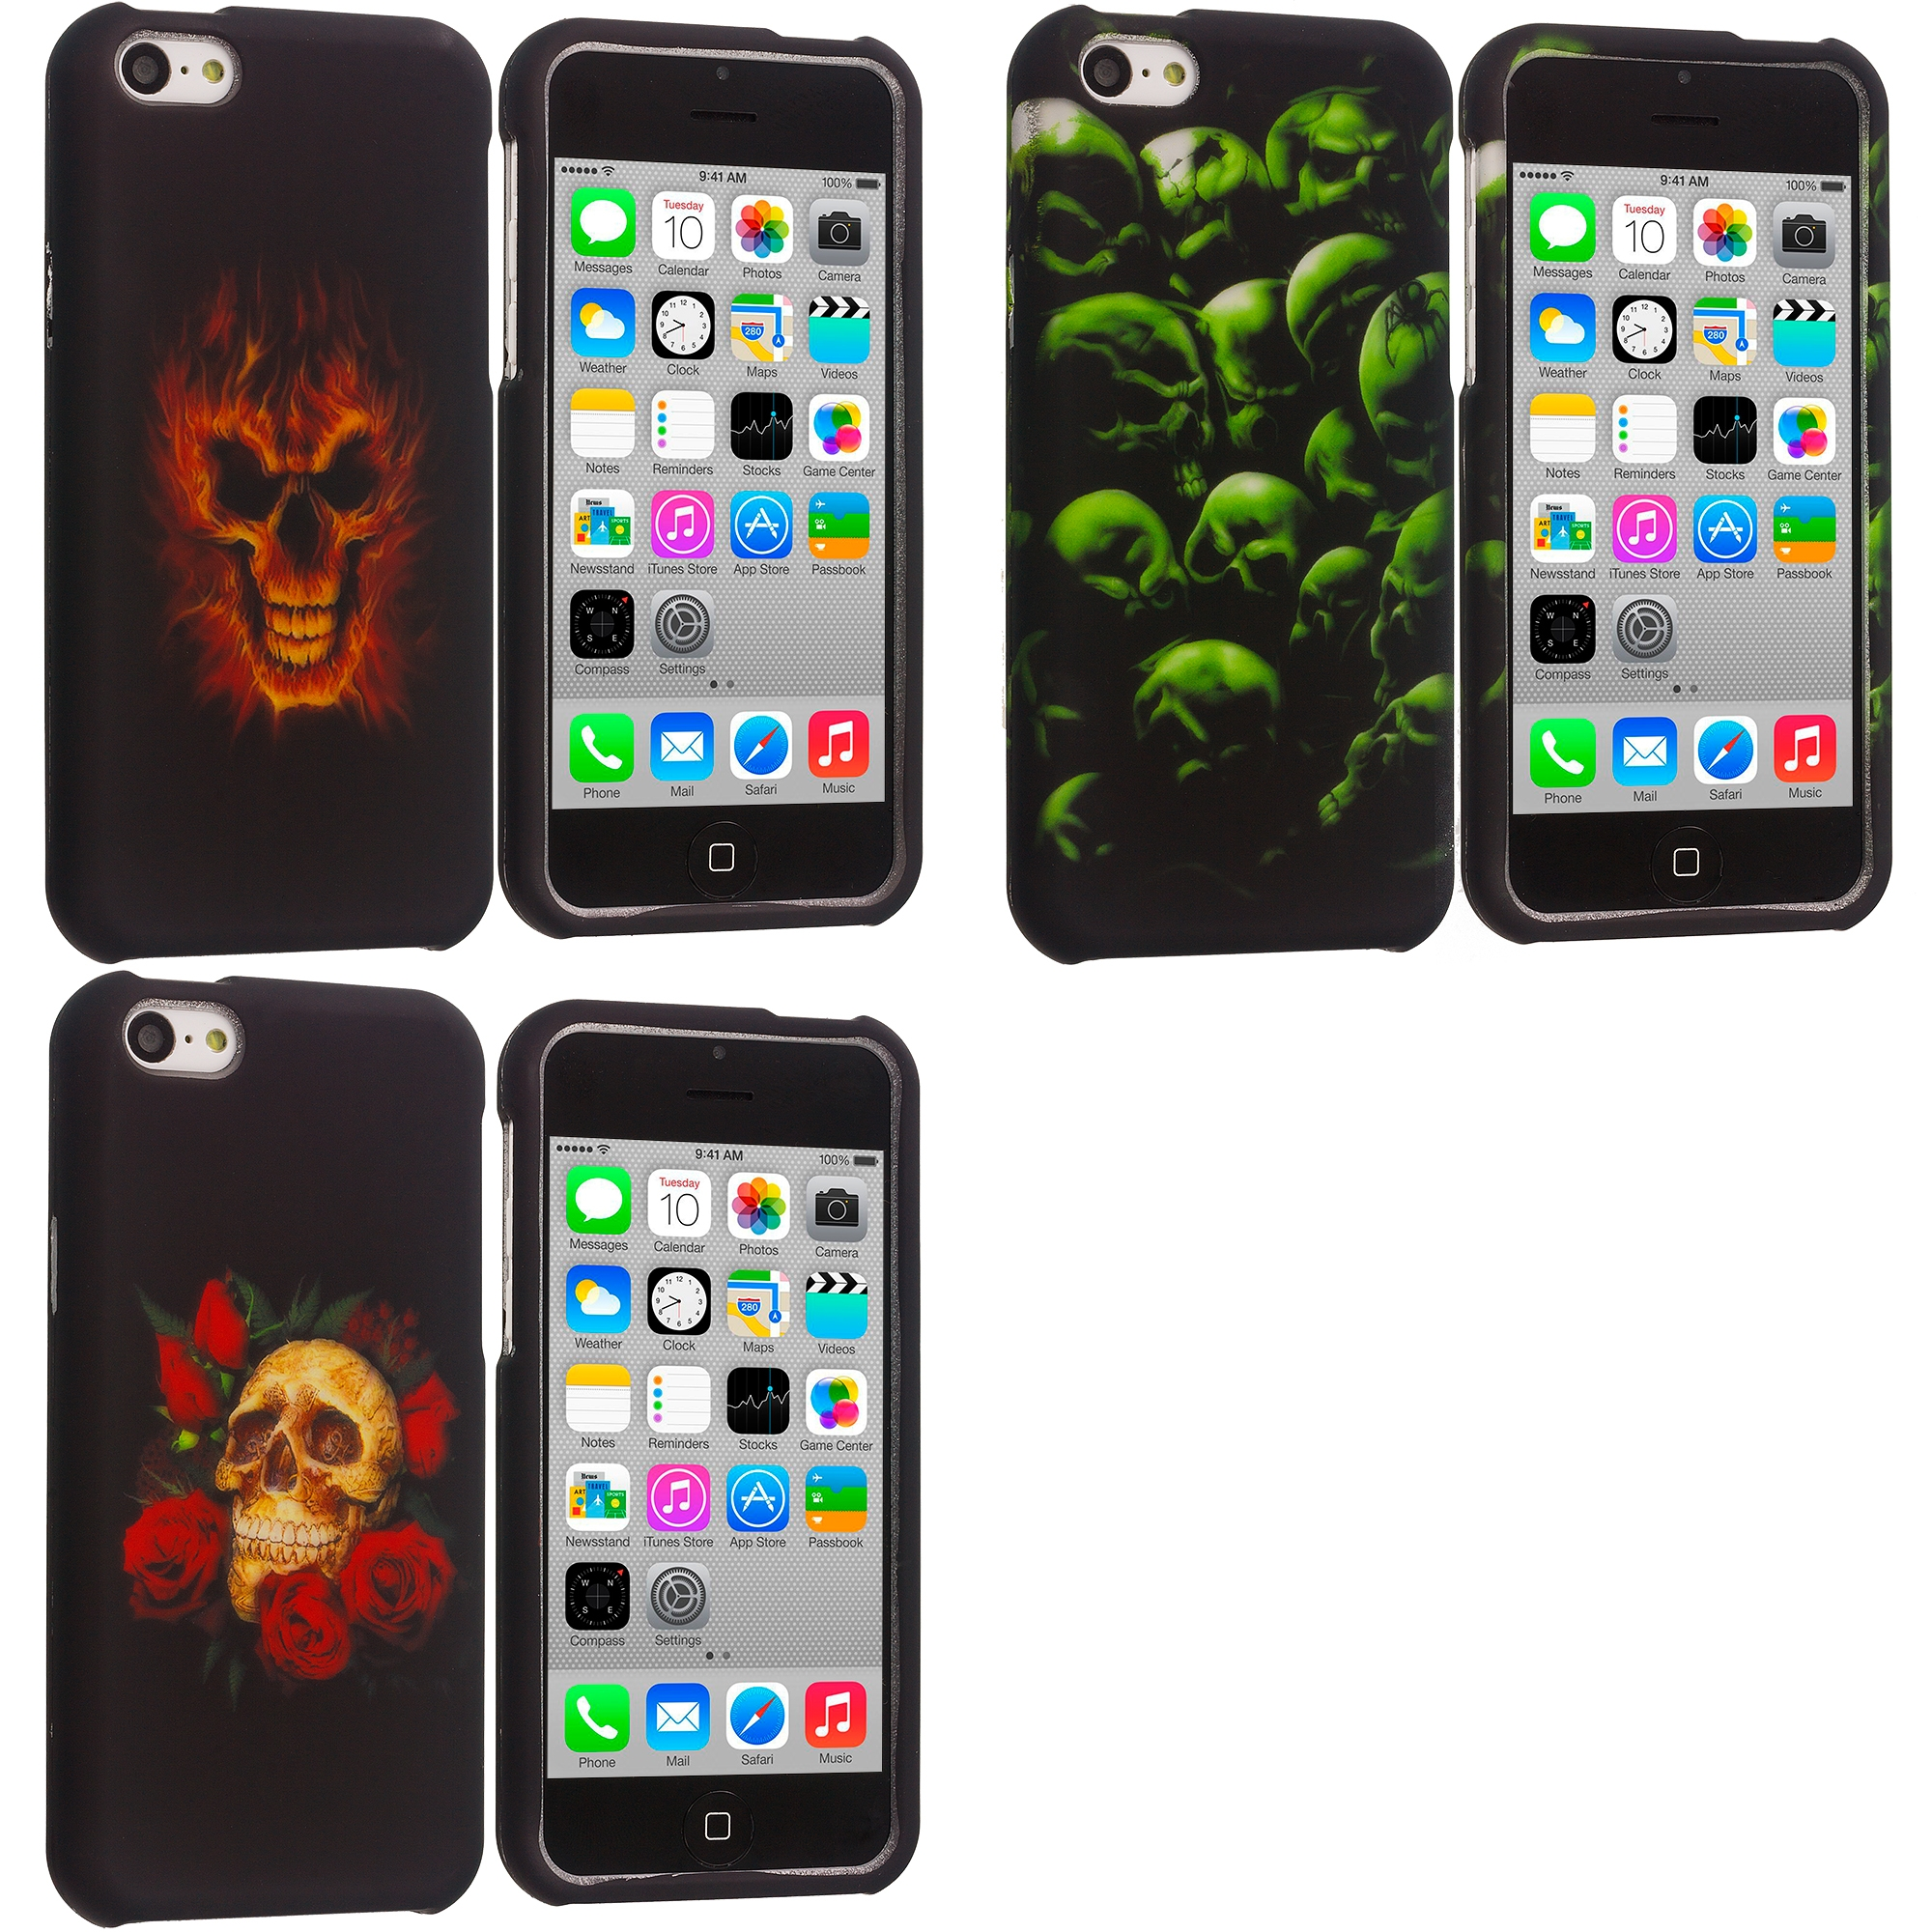 Apple iPhone 5C 3 in 1 Combo Bundle Pack - Fire Skull Hard Rubberized Design Case Cover